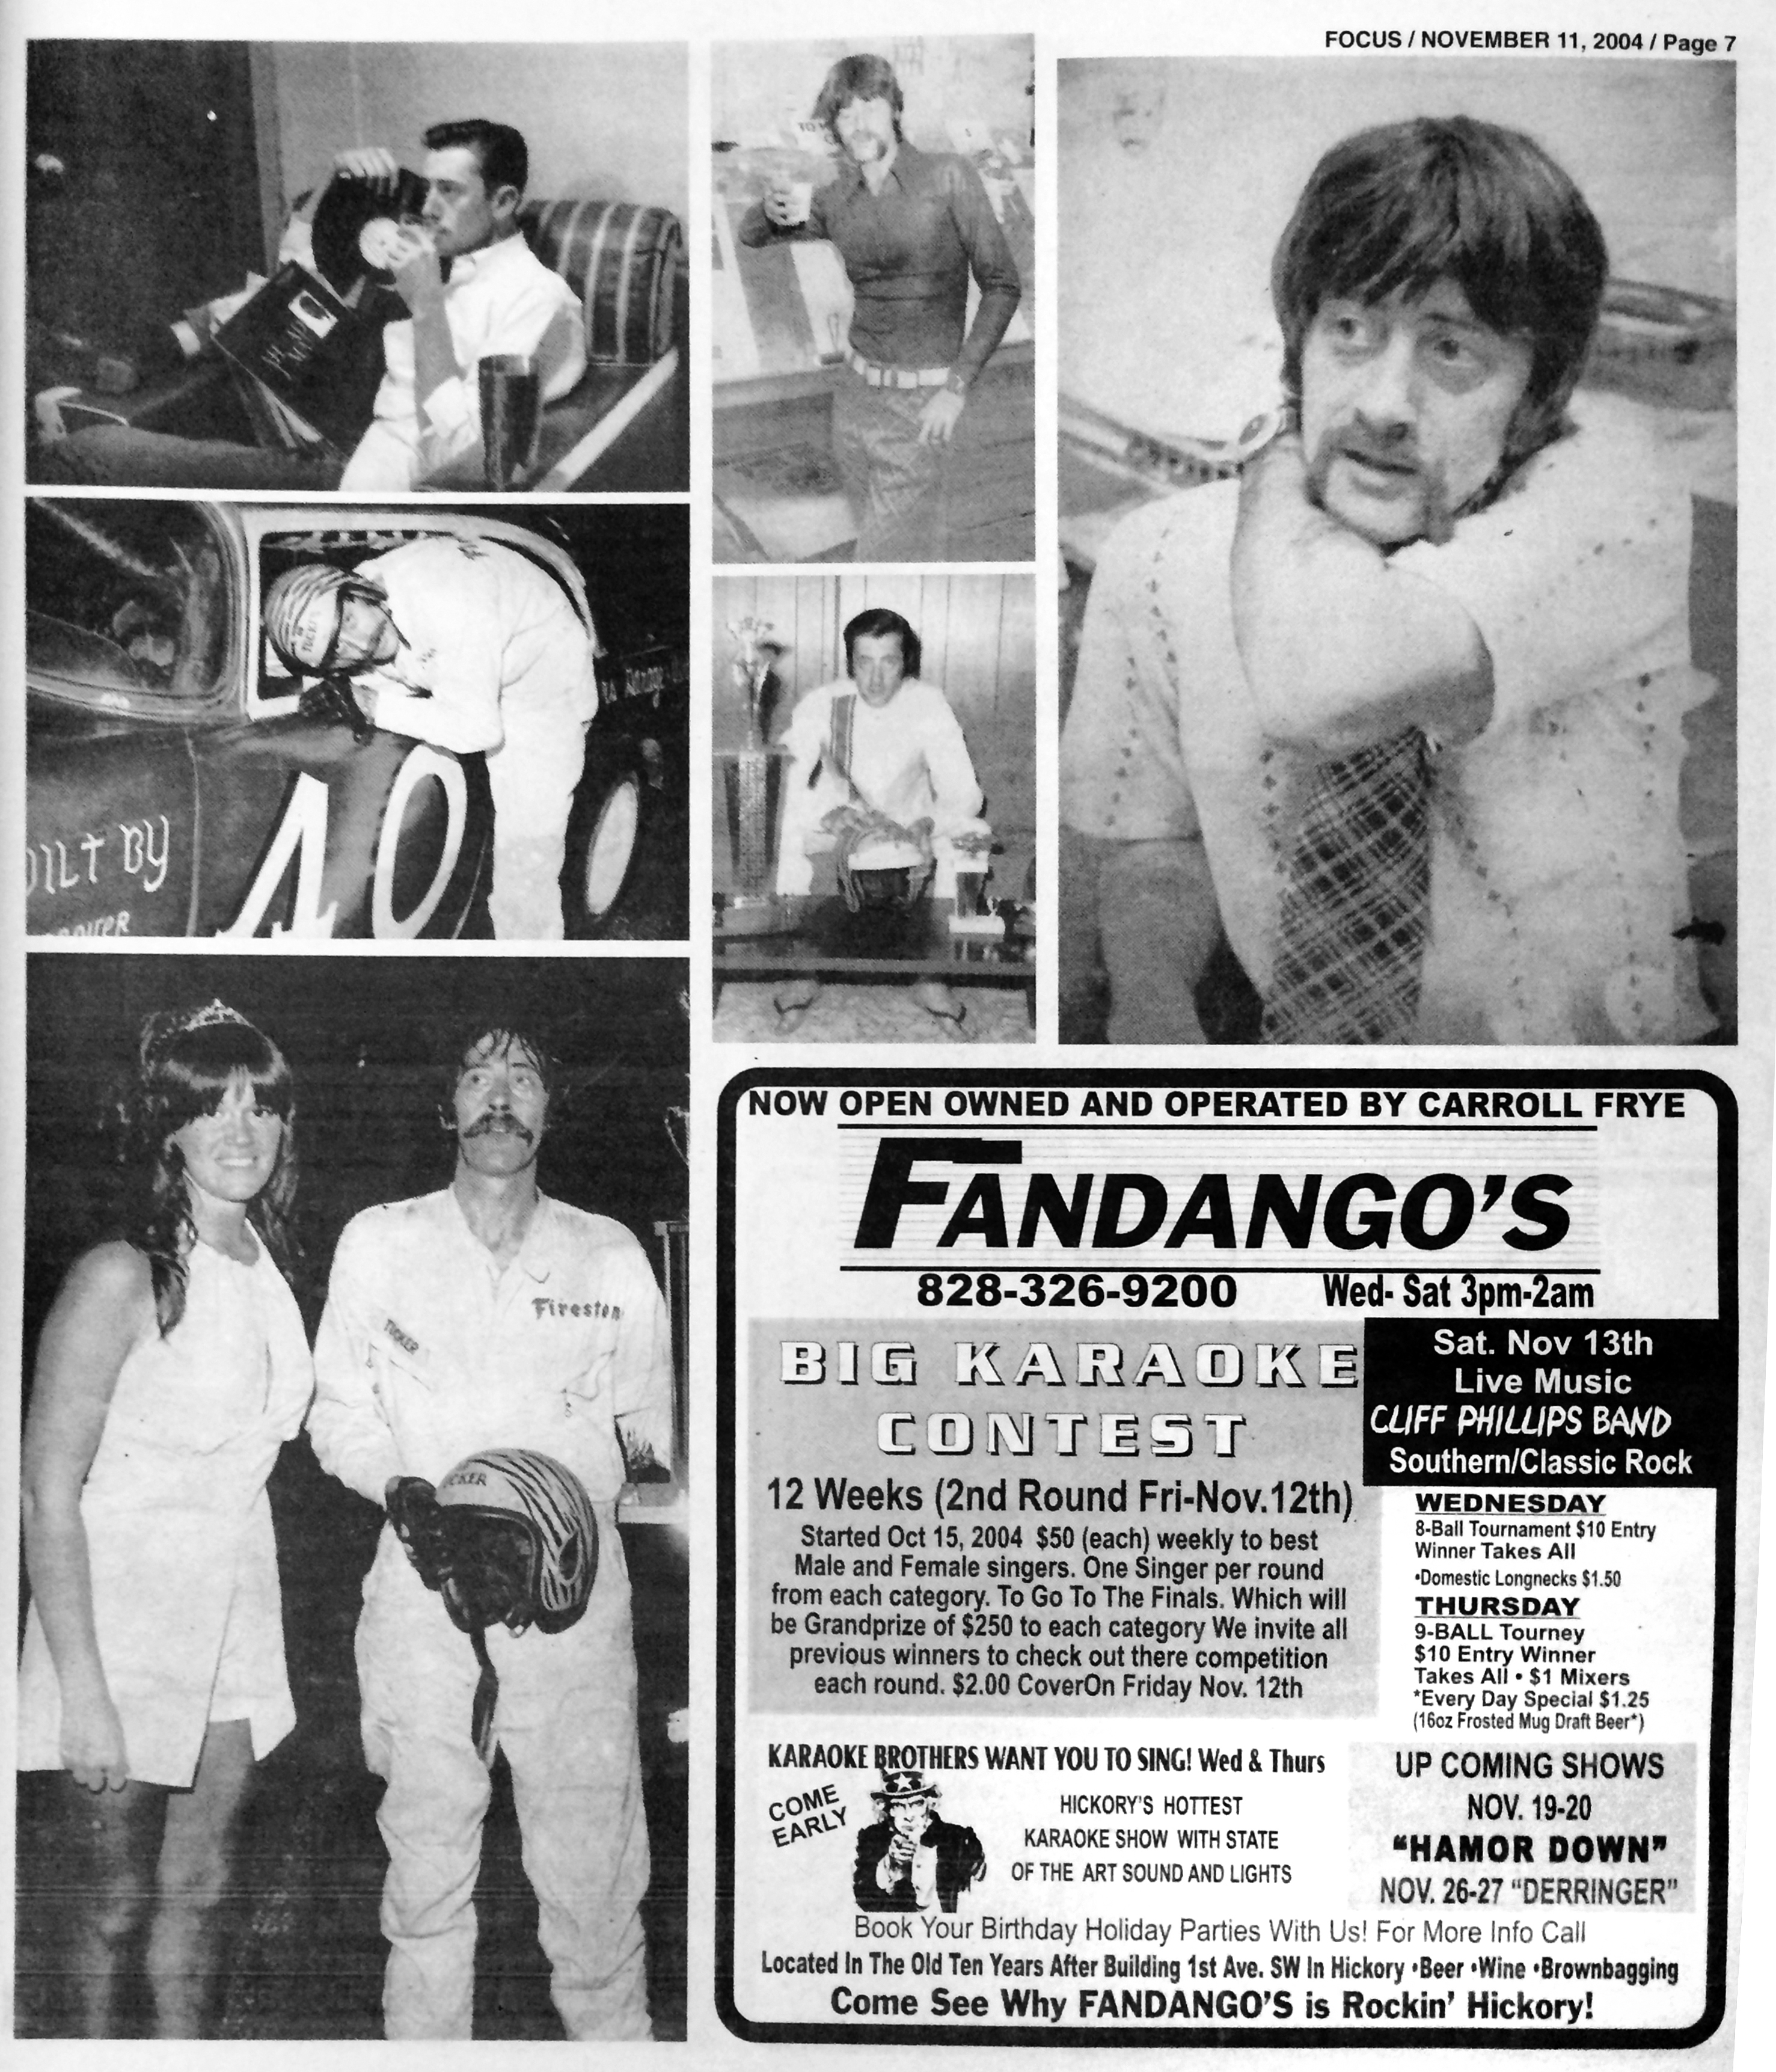 In Memory photos from late publisher John Tucker, Jr. as well as advertisement for Fandango's published November 11, 2004.